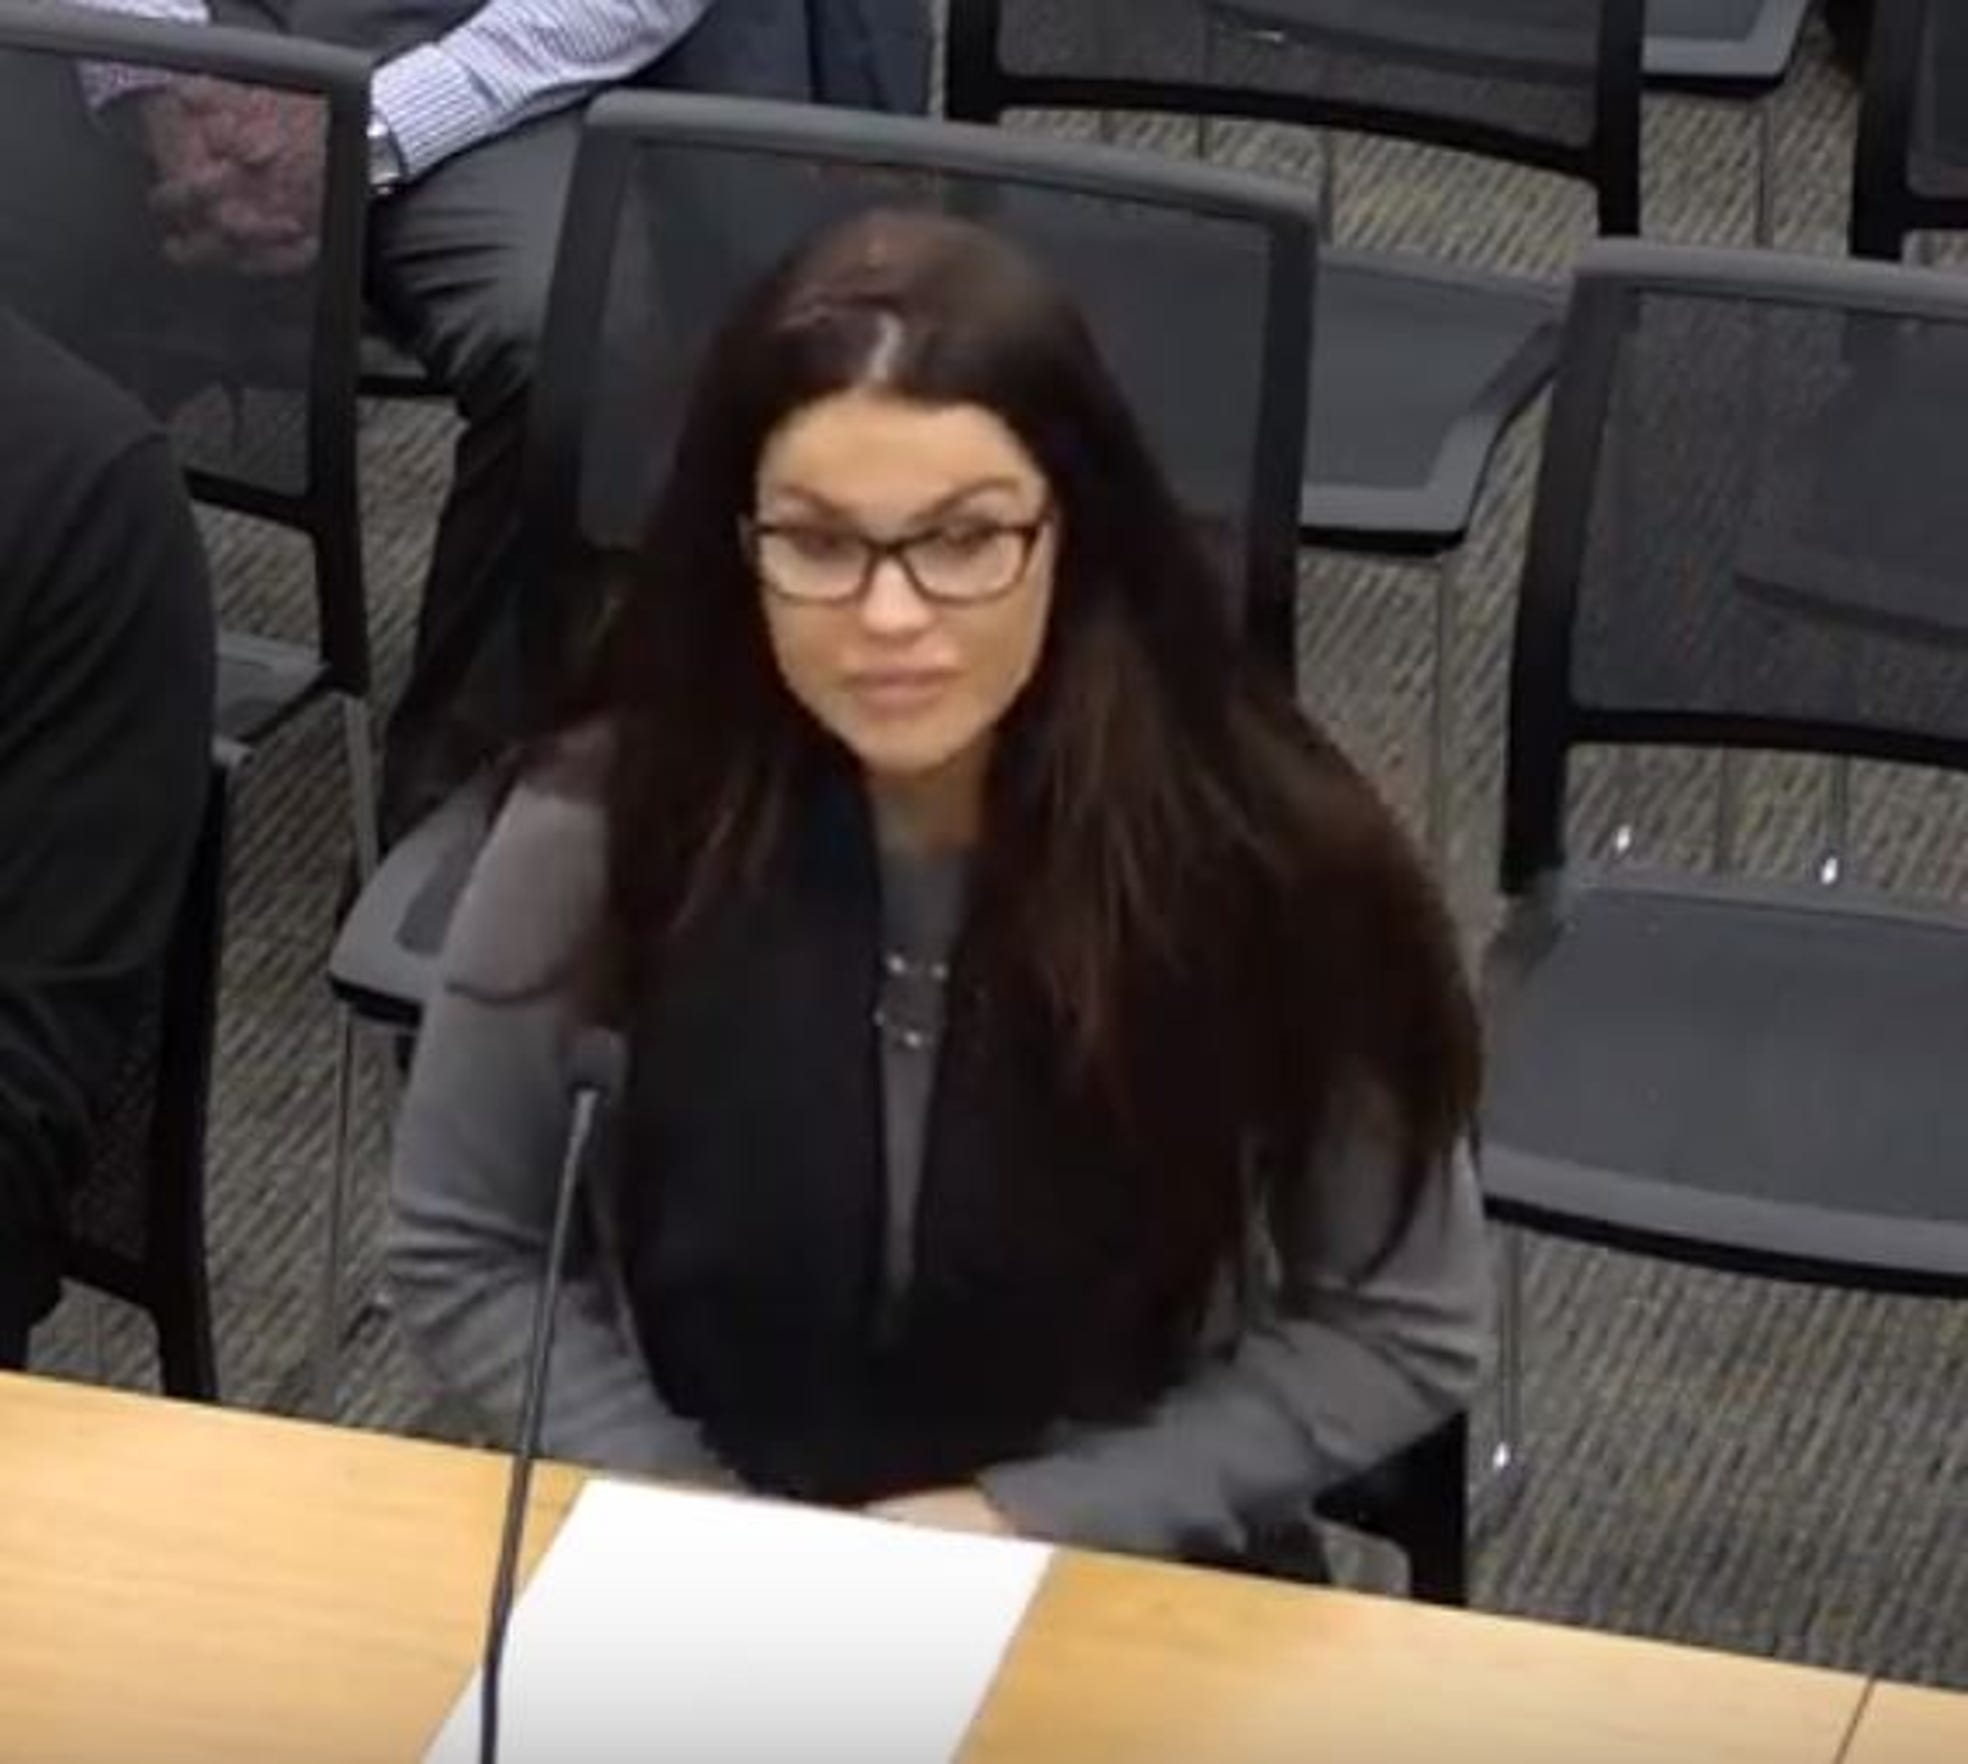 A video shows Tawny Costa at a Foxborough, Massachusetts, Board of Selectmen meeting on Jan. 23, 2018.